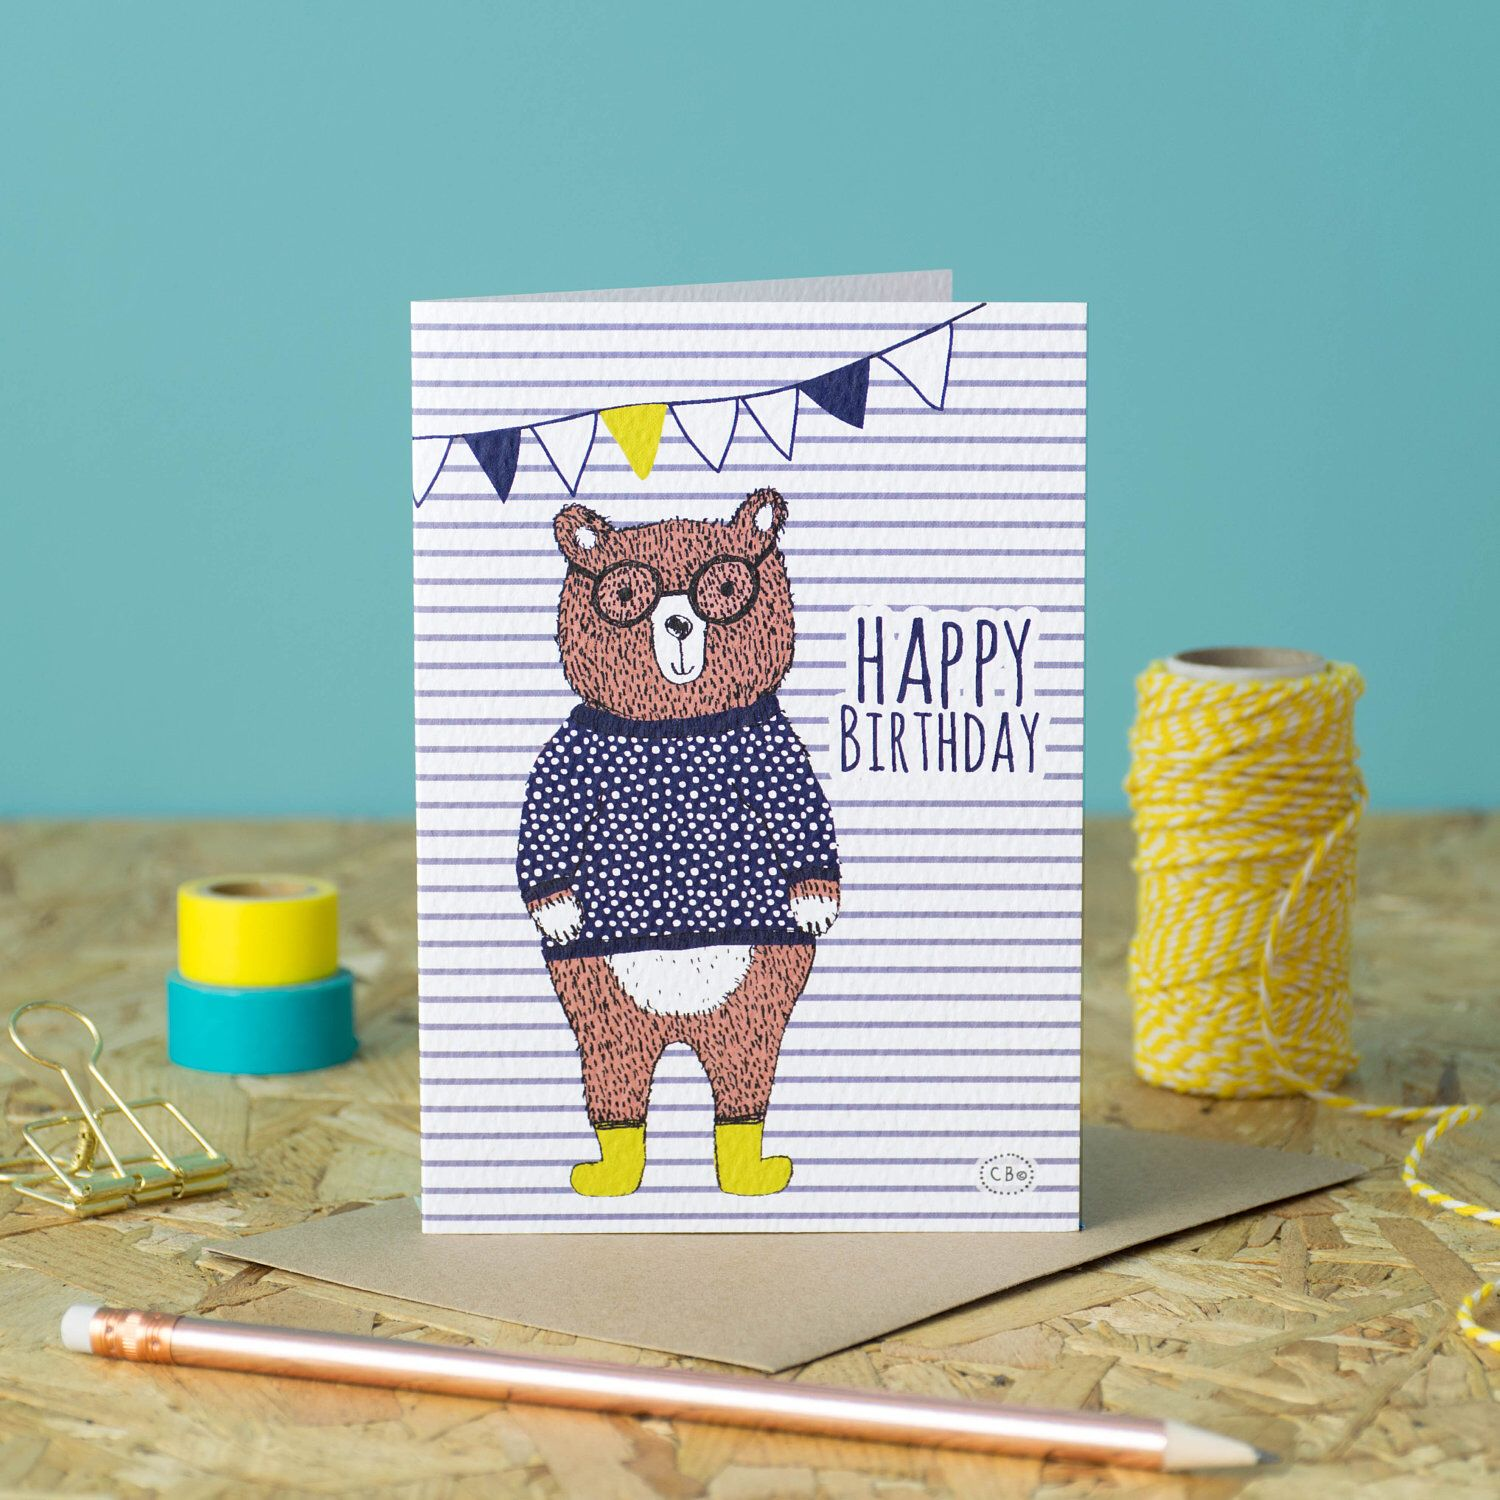 A personal favourite from my etsy shop httpsetsyuk happy birthday greetings card illustrated bear designed by corin beth designs kristyandbryce Image collections